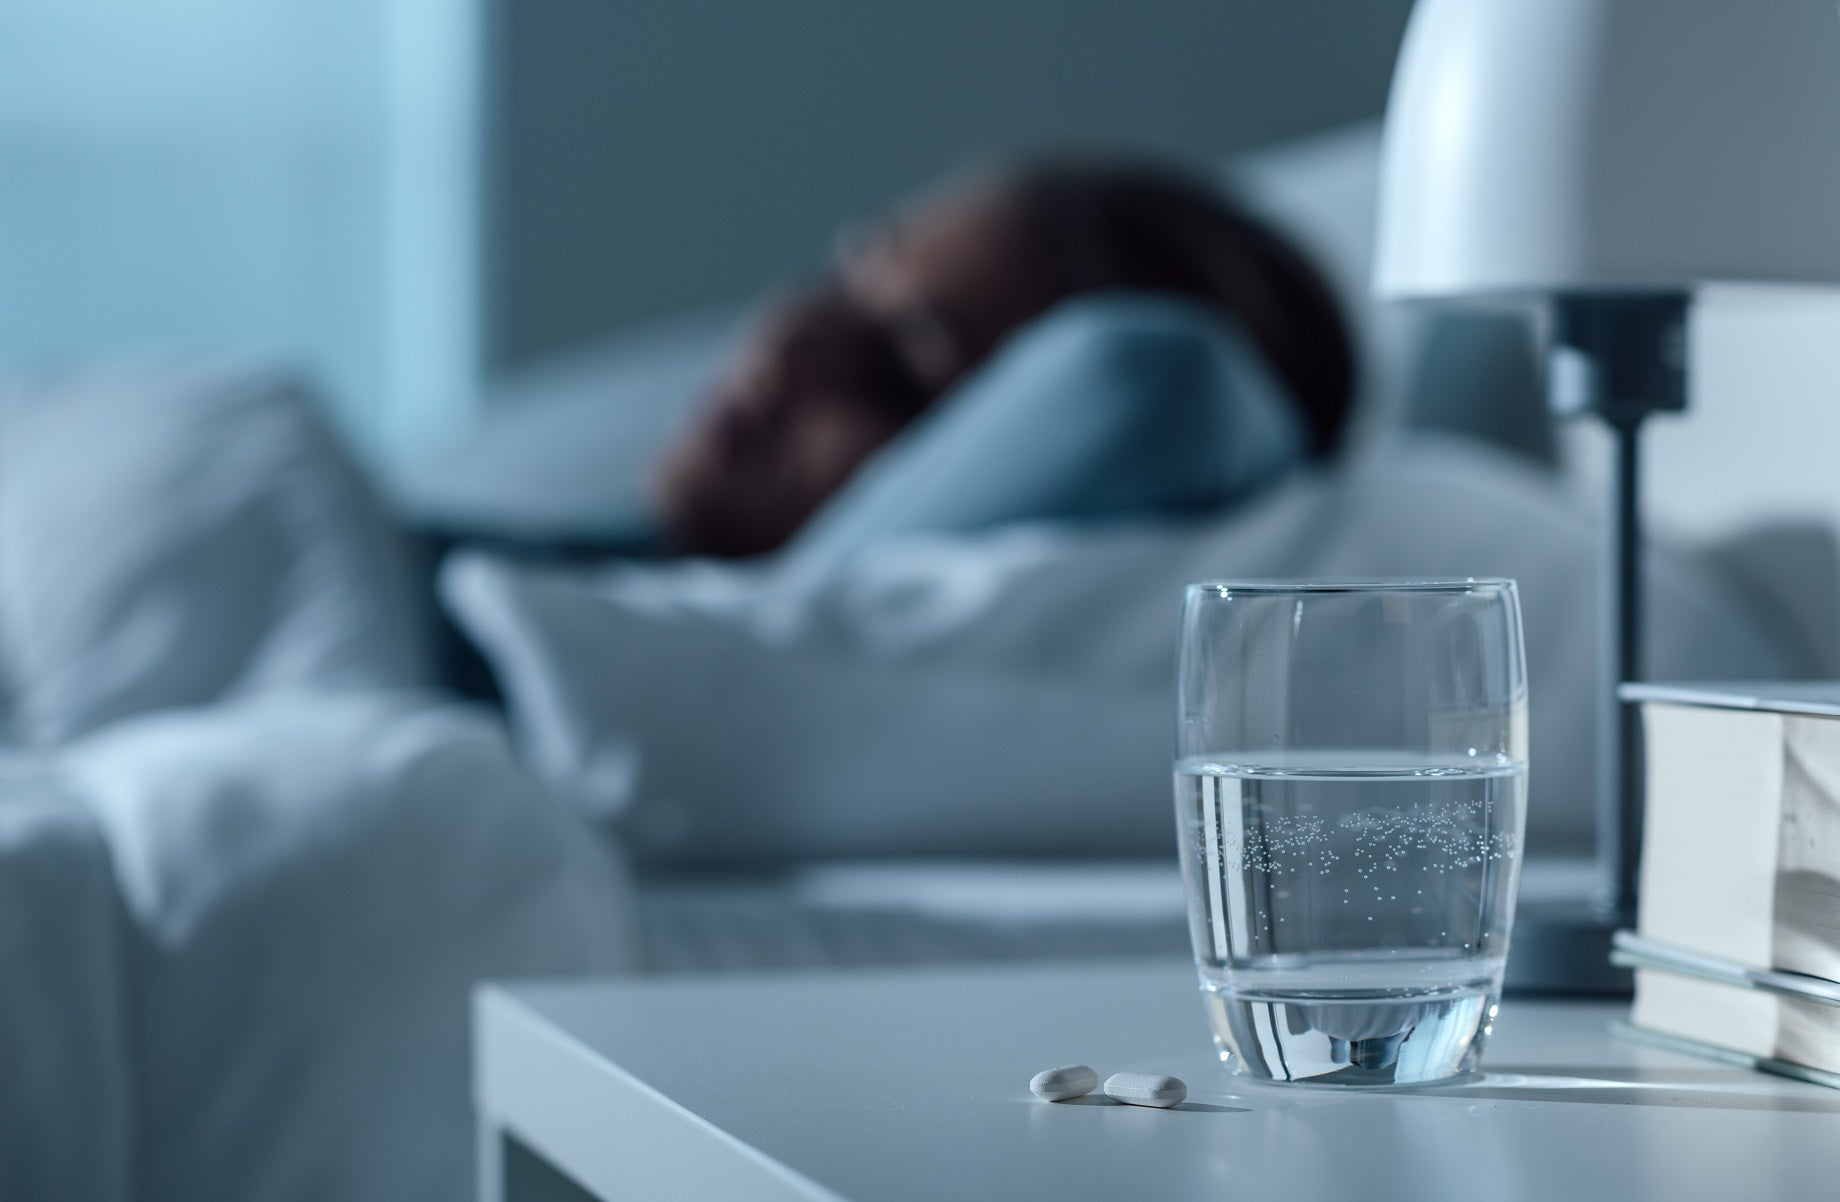 narcolepsy treatment medication next to glass of water on bedside table